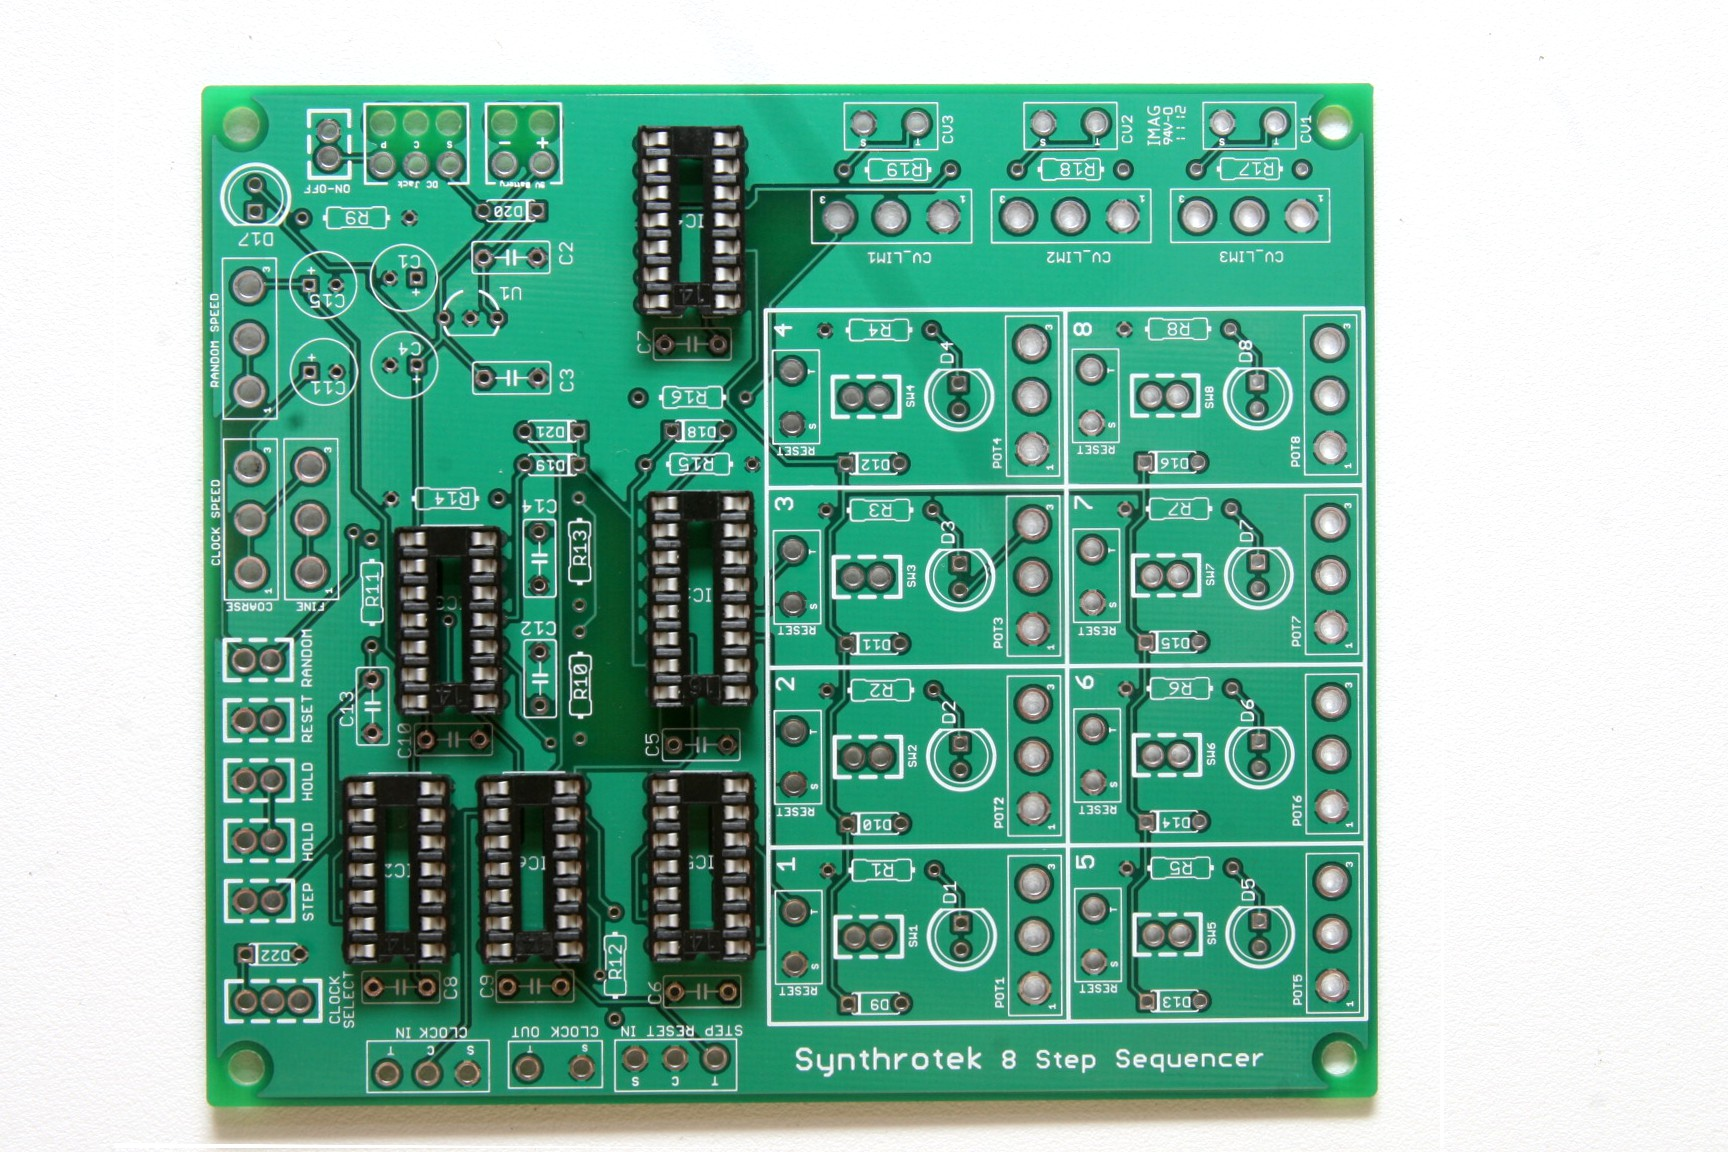 8 Step Sequencer Assembly Instructions Synthrotek Cmos 4017 Sequential Timer Pcb Components